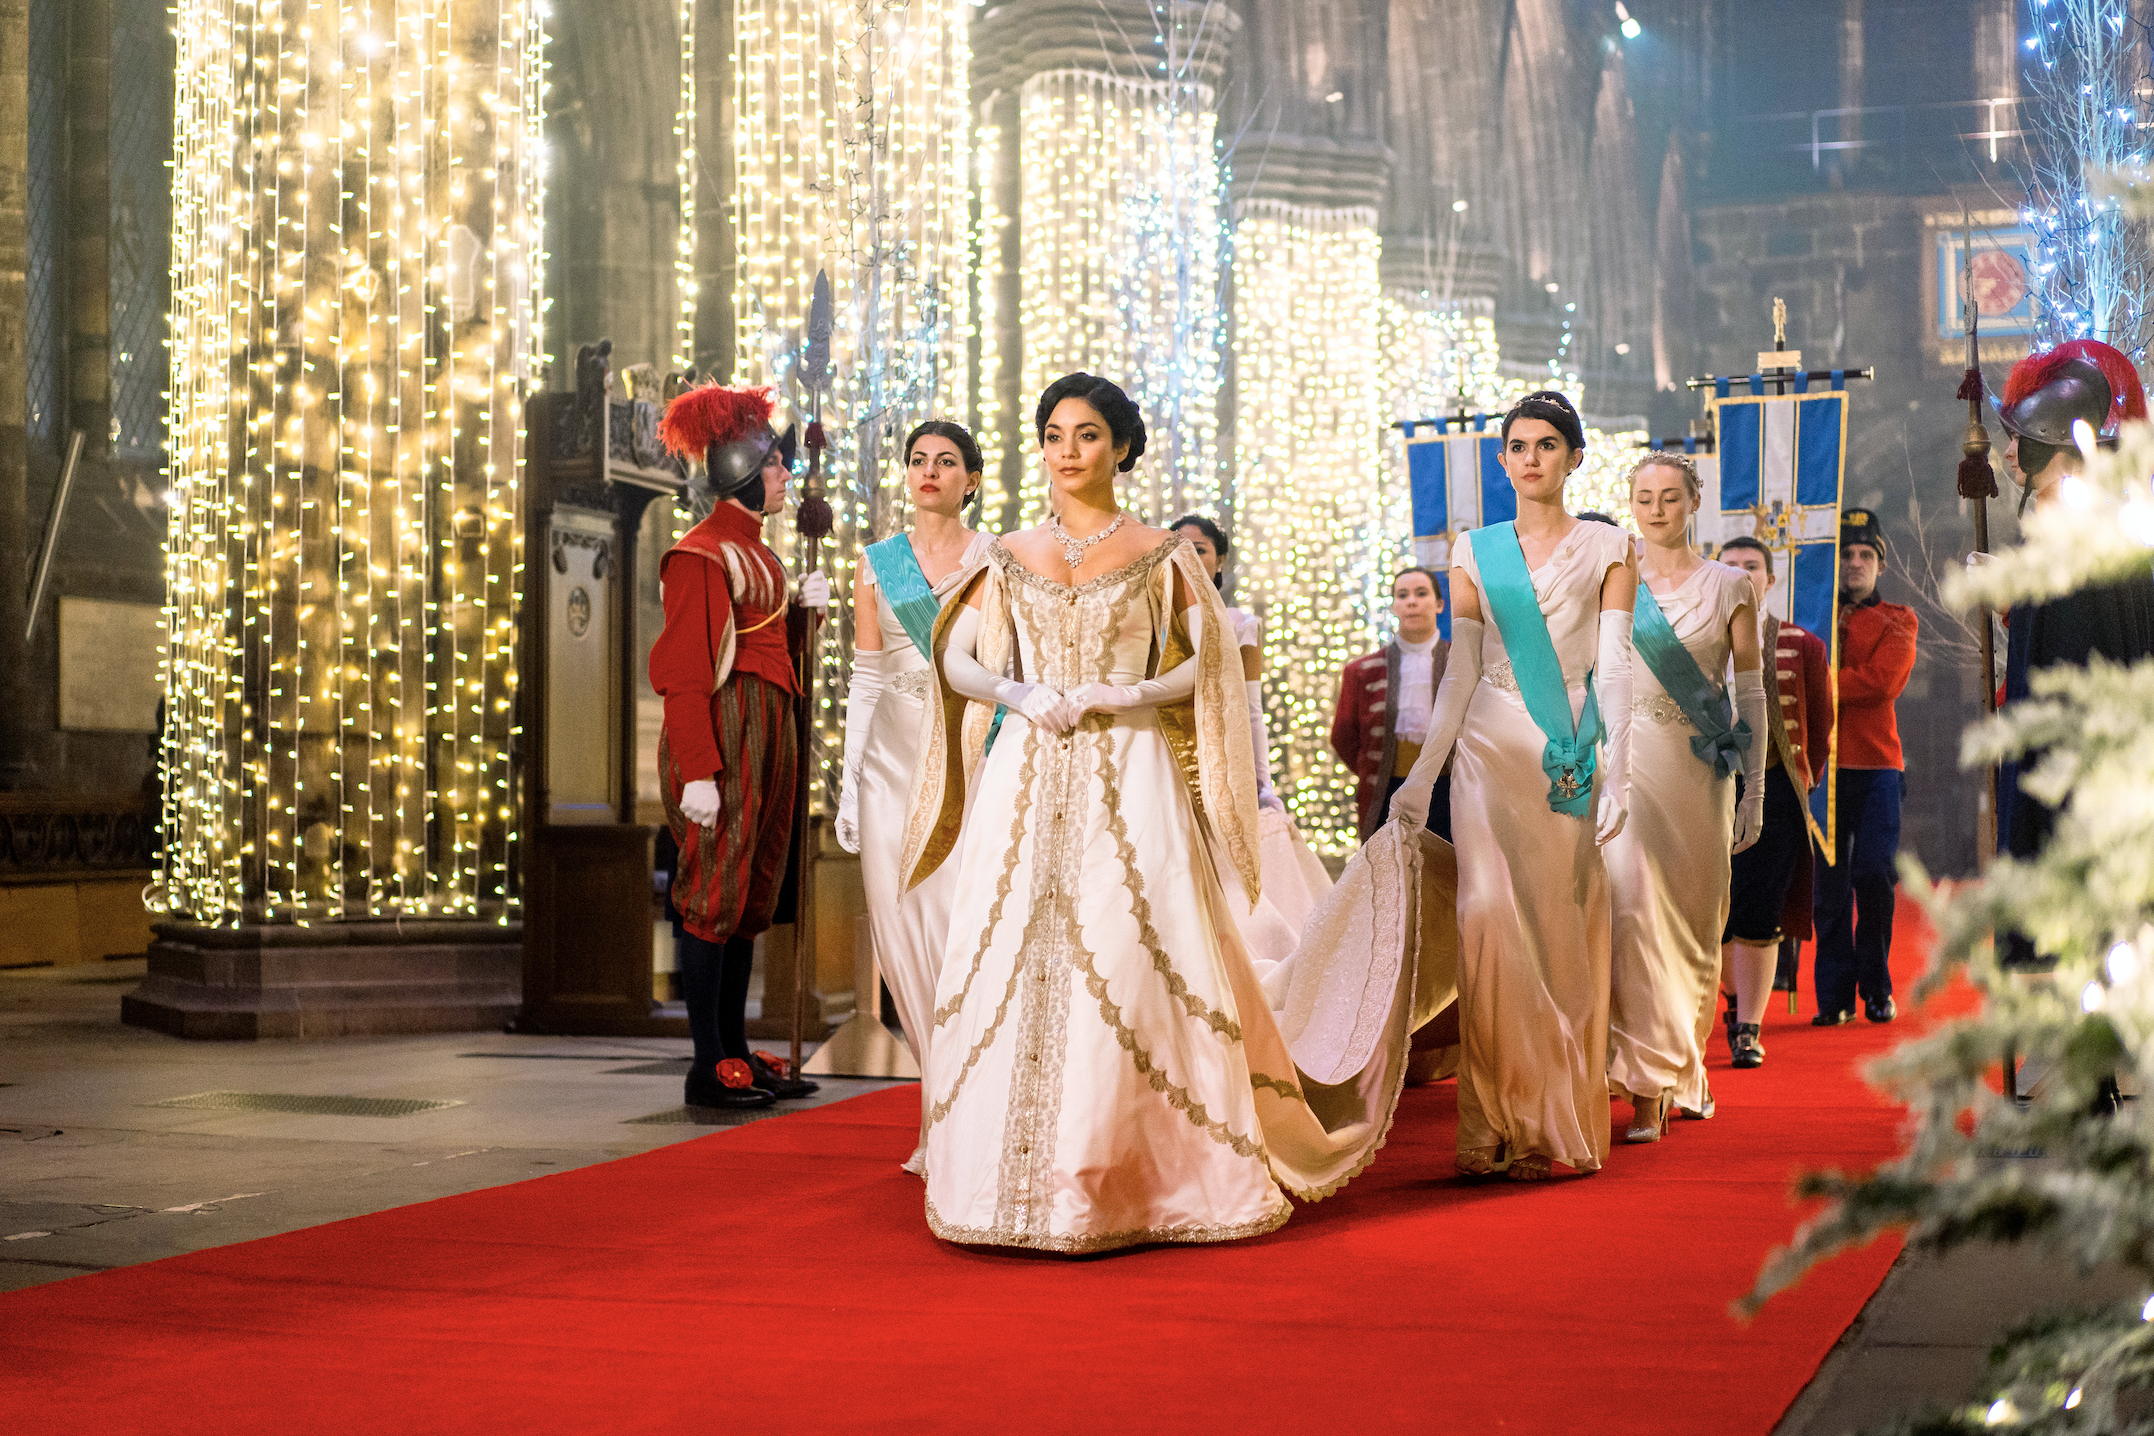 Vanessa Hudgens in The Princess Switch: Switched Again. Photo courtesy of Netflix   7 New Rules to Celebrate Christmas According to Netflix   The Little Binger